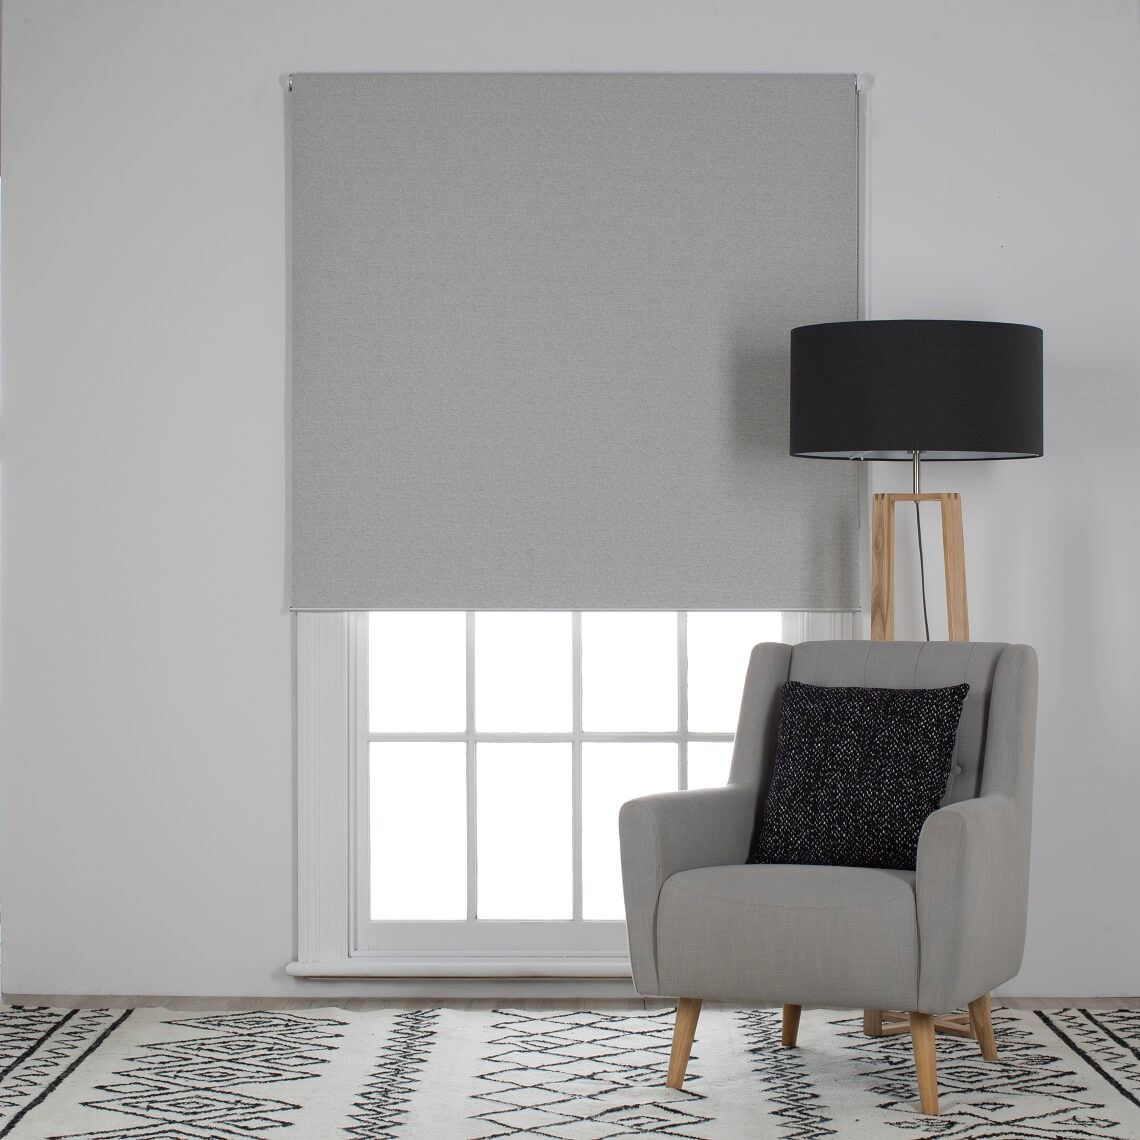 Trenton Blockout Roller Blind Size W 180cm x D 0cm x H 210cm in Shale 100% Polyester Freedom by Freedom, a Curtains for sale on Style Sourcebook